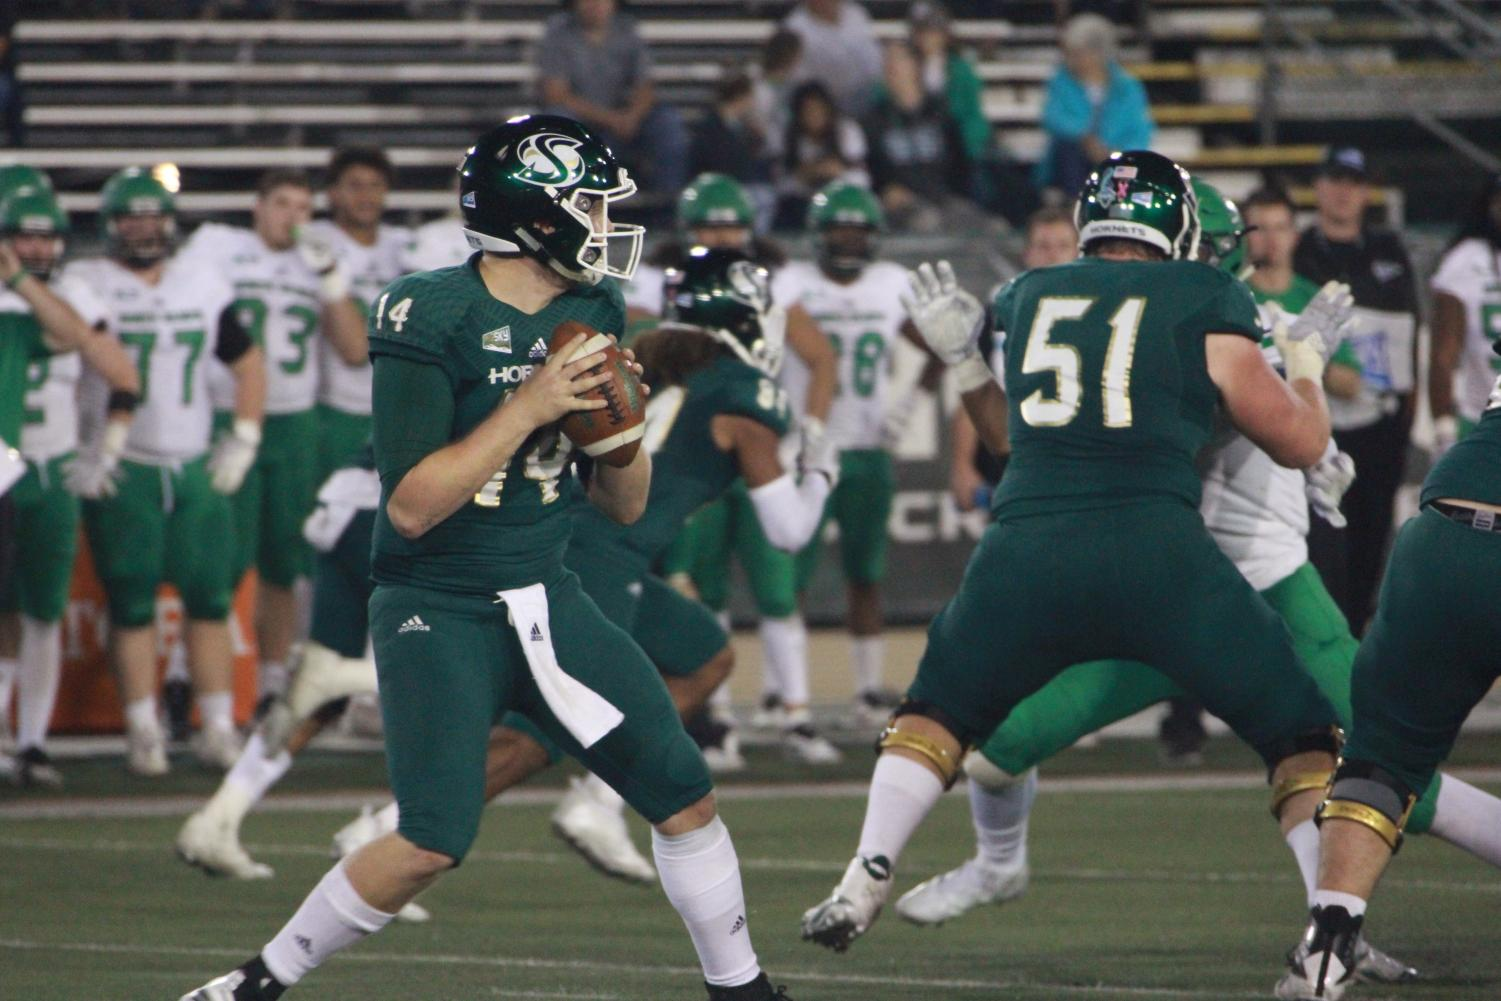 Sac State senior quarterback Wyatt Clapper threw for 119 yards in his first career start while Kevin Thomson is out with an injury. The Hornets fell to North Dakota 41-15 on Saturday, Oct. 20.